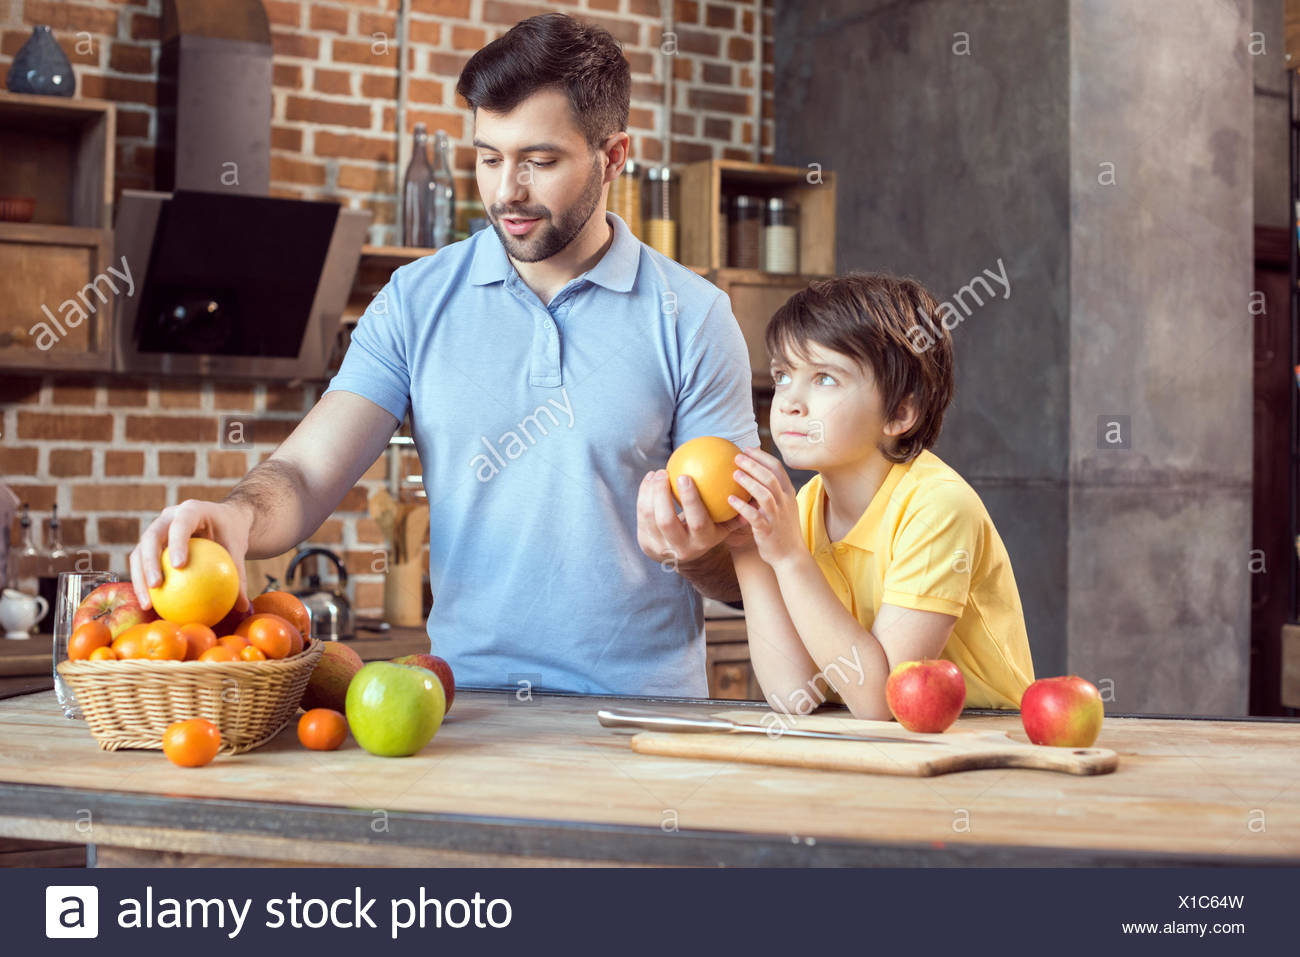 Father and son selecting fruits from basket at kitchen table - Stock Image